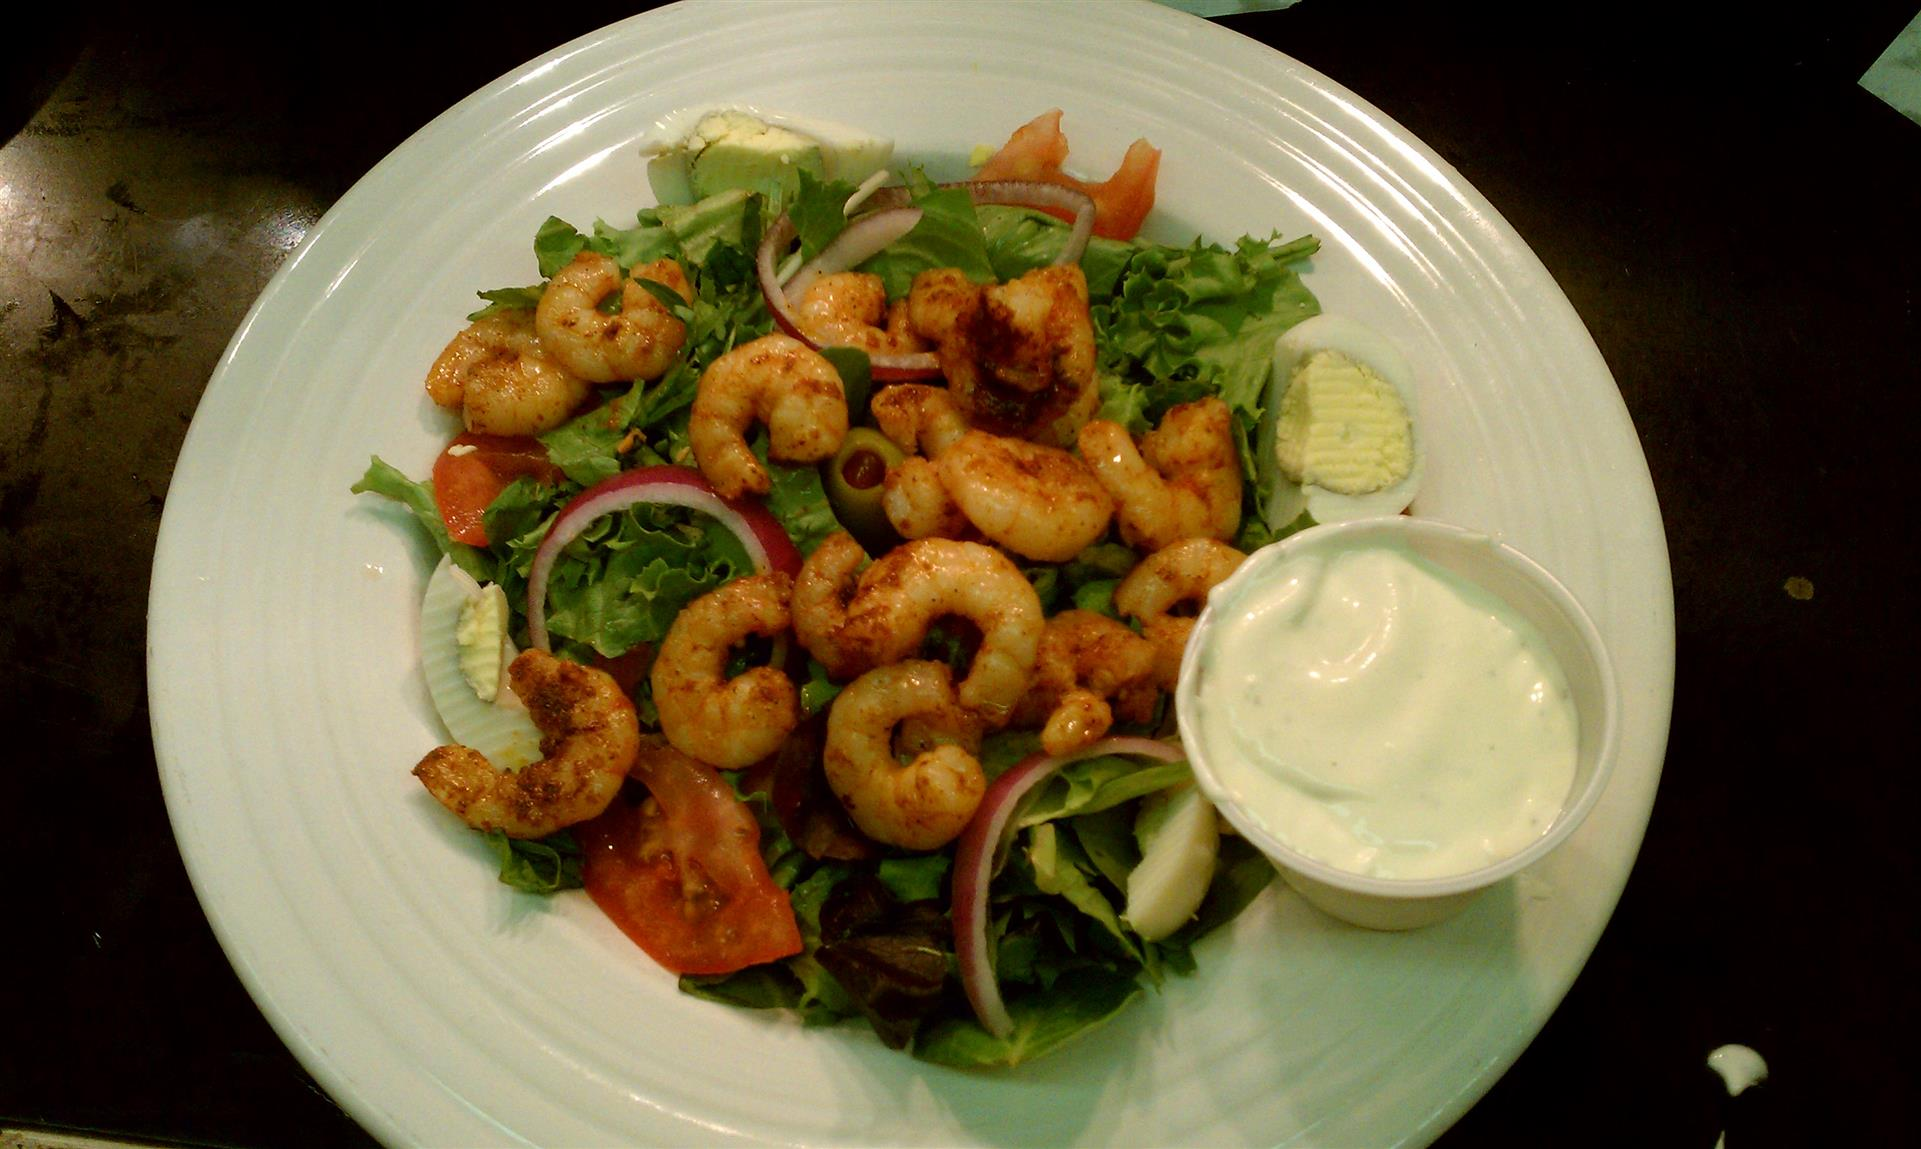 salad with cooked shrimp, onions, tomatoes and eggs.